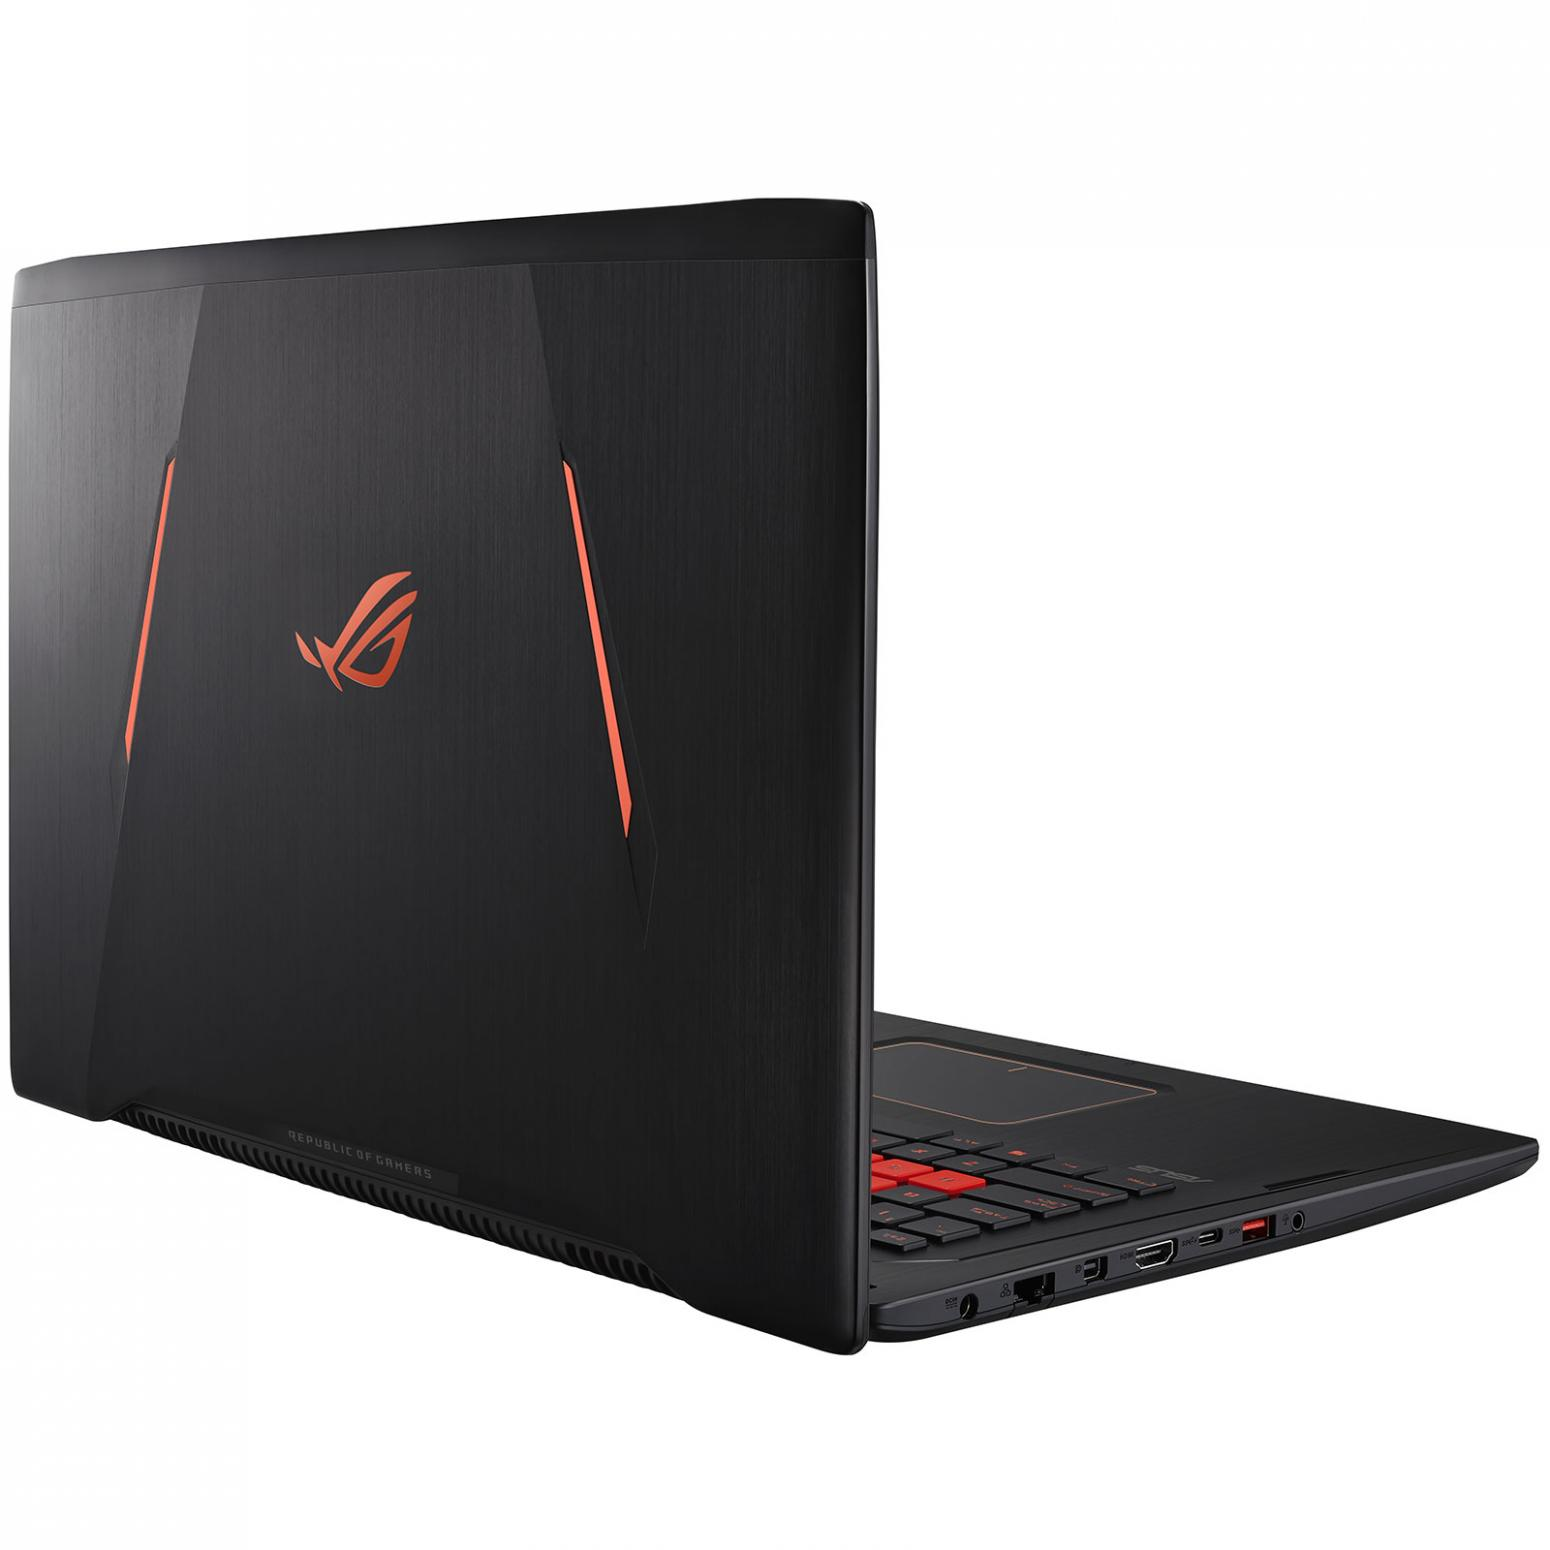 Ordinateur portable Asus ROG G702VM-GC072T - GTX 1060 - photo 1